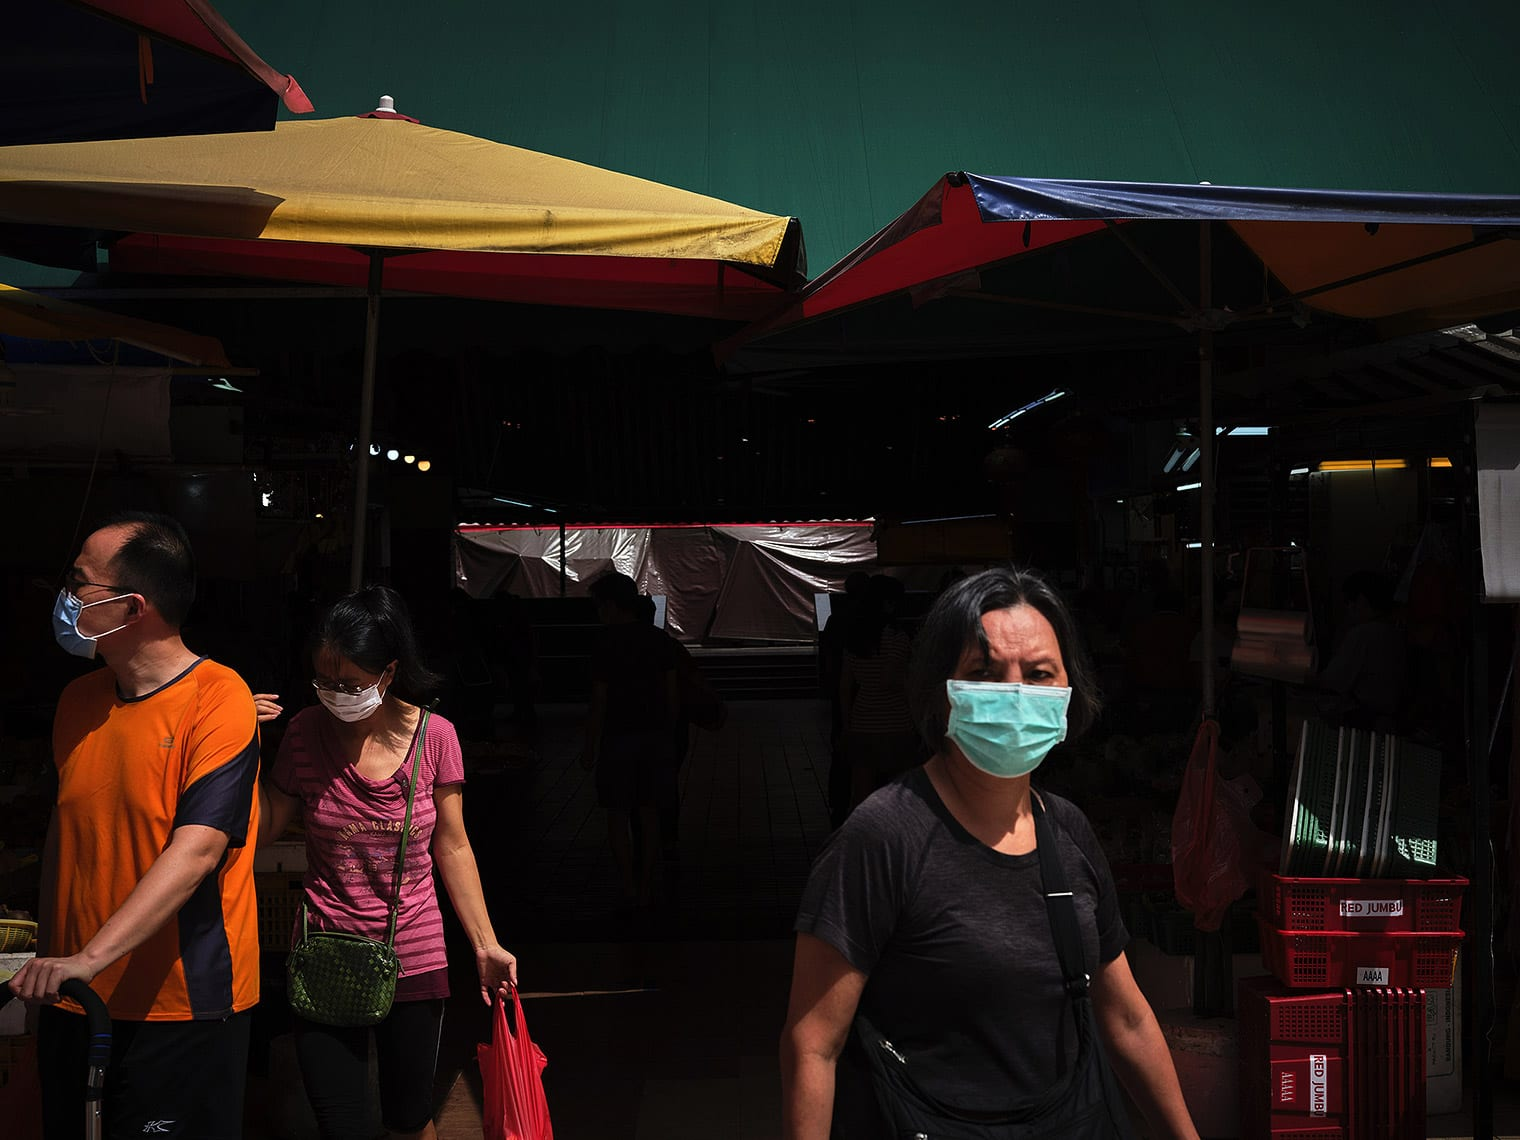 Masked shoppers stand under awnings at a Singapore wet market